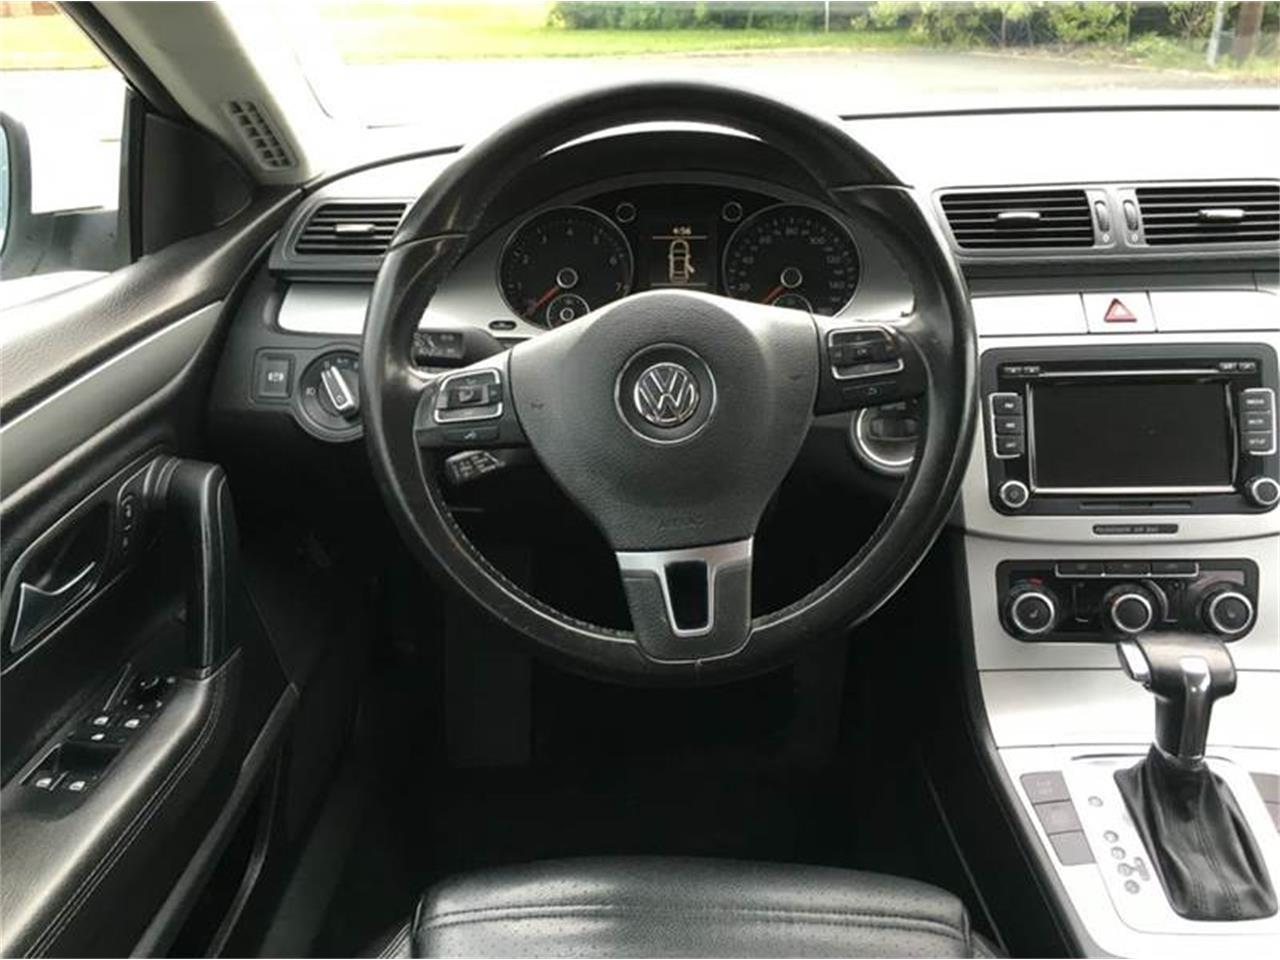 Large Picture of 2010 Volkswagen CC located in Olathe Kansas - $8,950.00 - G0M5